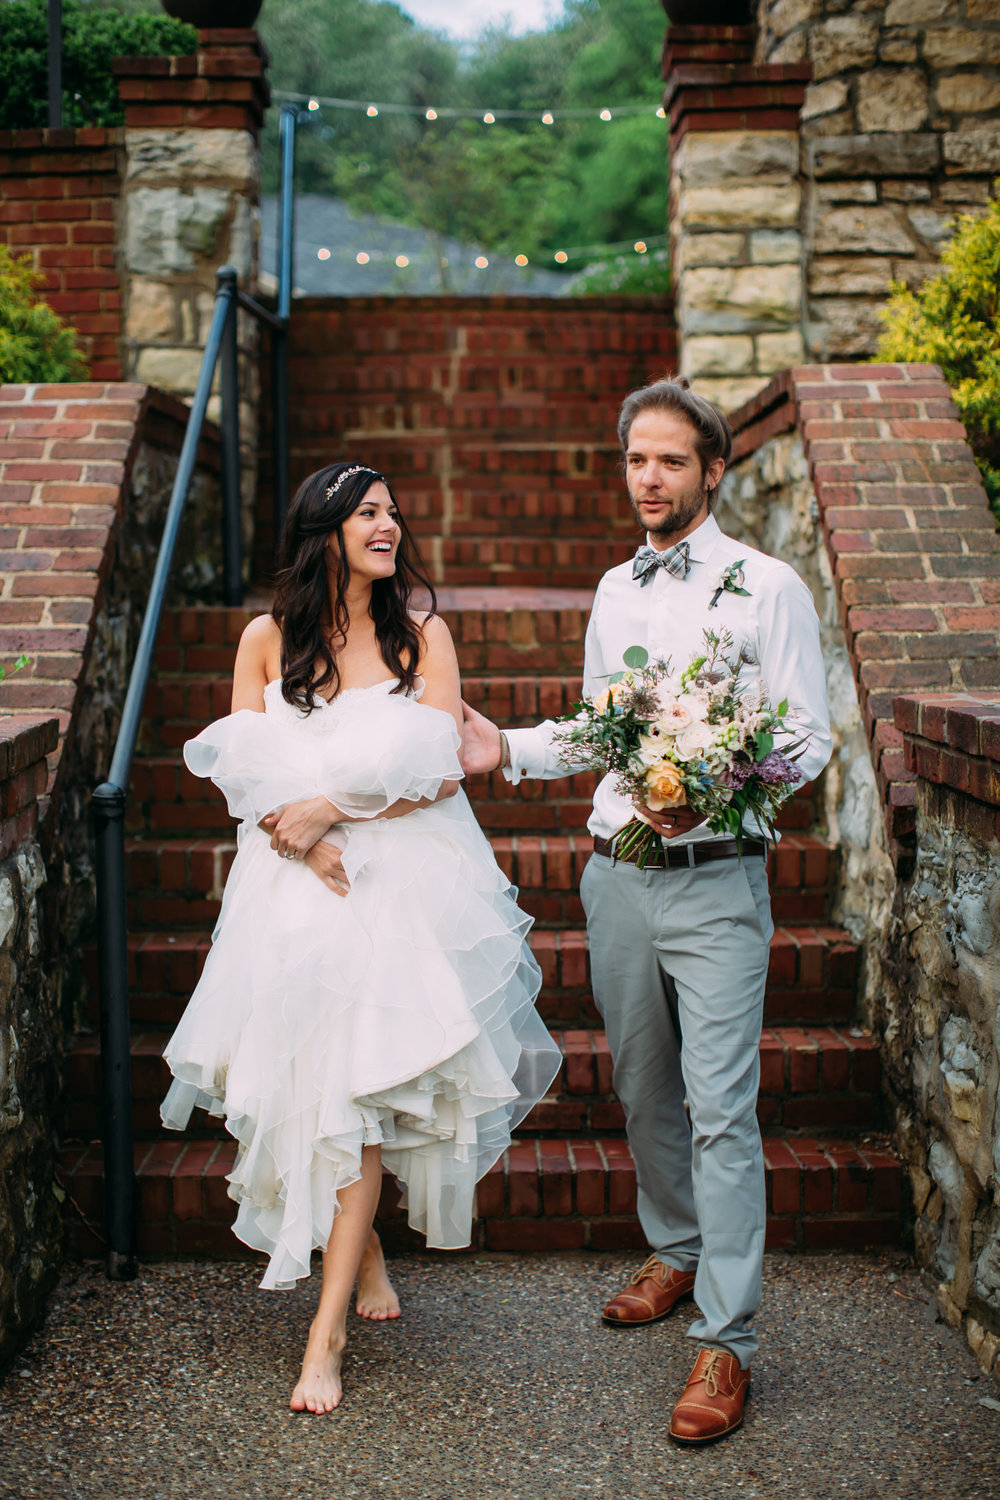 Bohemian wedding, st louis wedding photographer